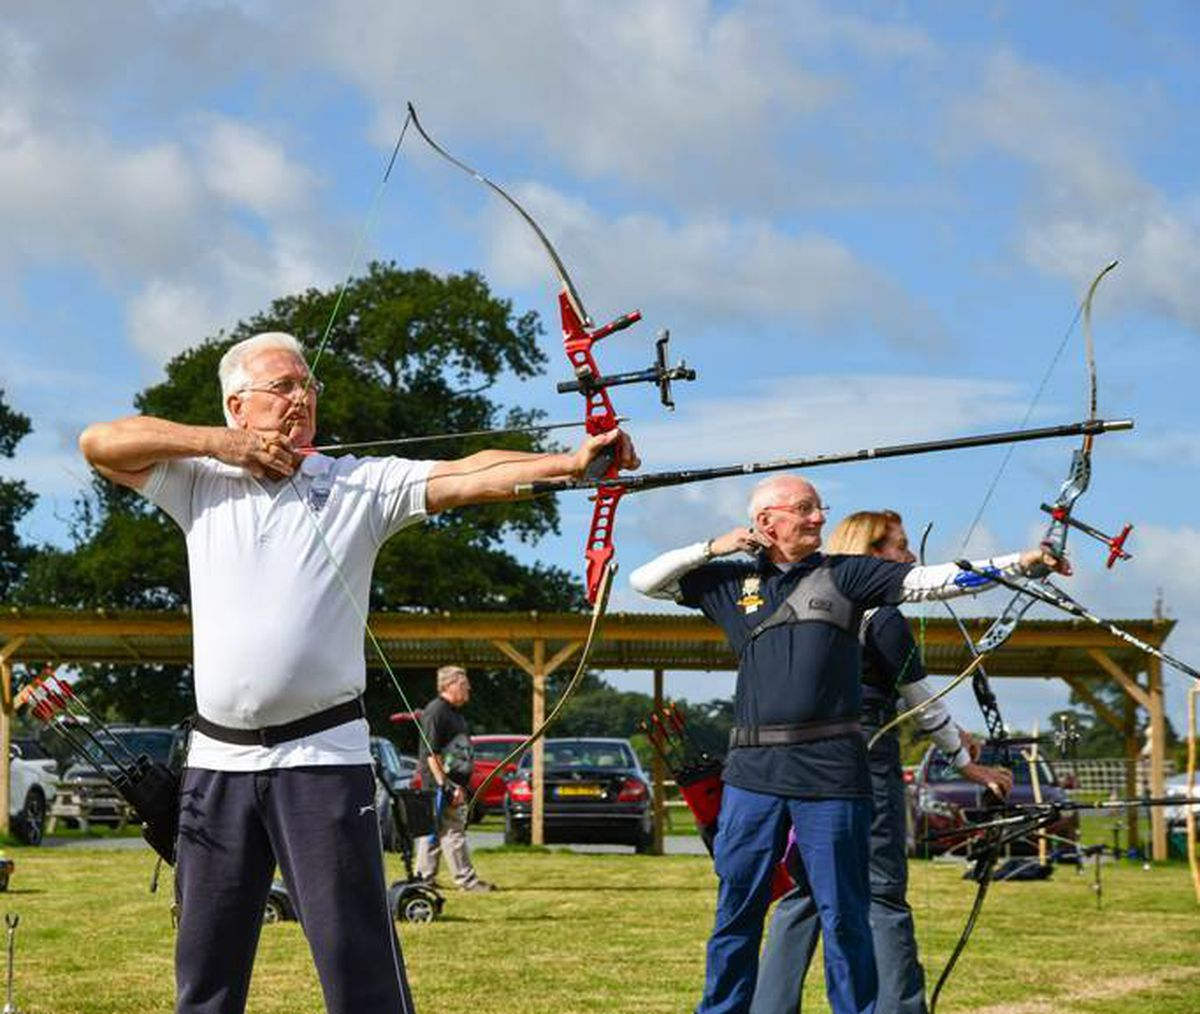 Croesowallt Archery Club has moved to the British Ironworks Centre